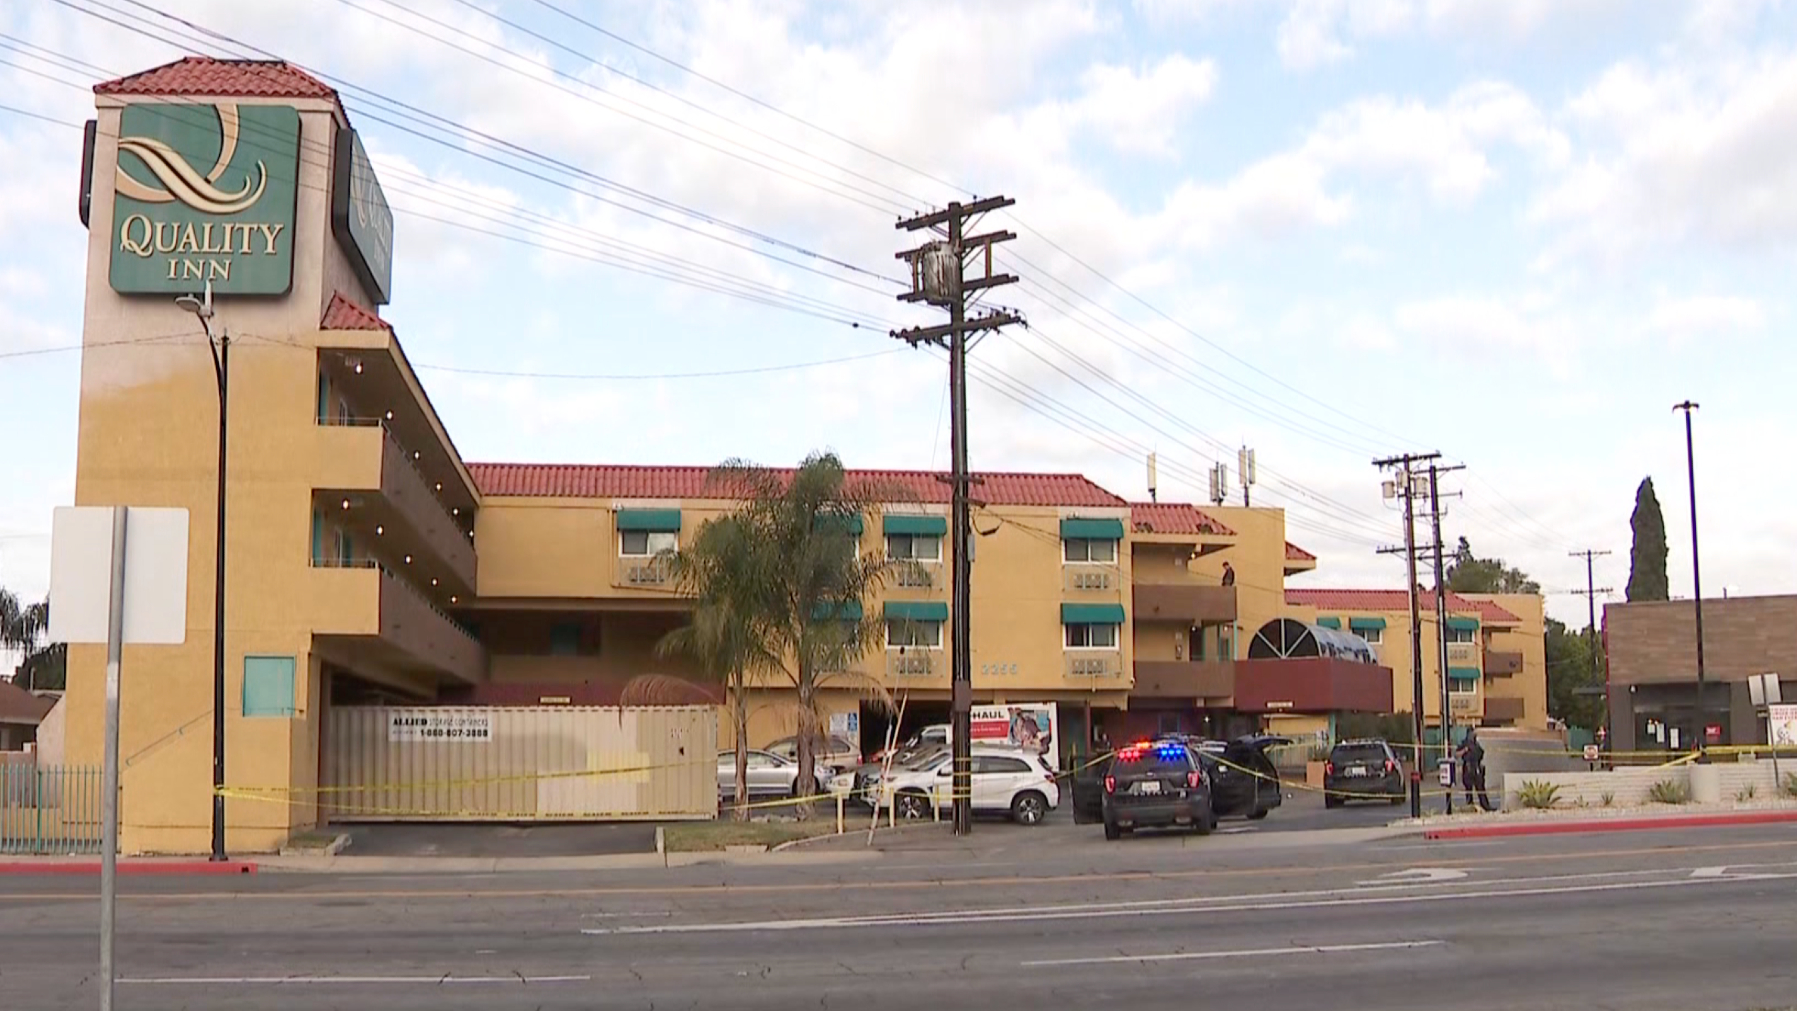 Authorities respond to investigate a deadly police shooting outside a Quality Inn in Burbank on March 8, 2021. (KTLA)